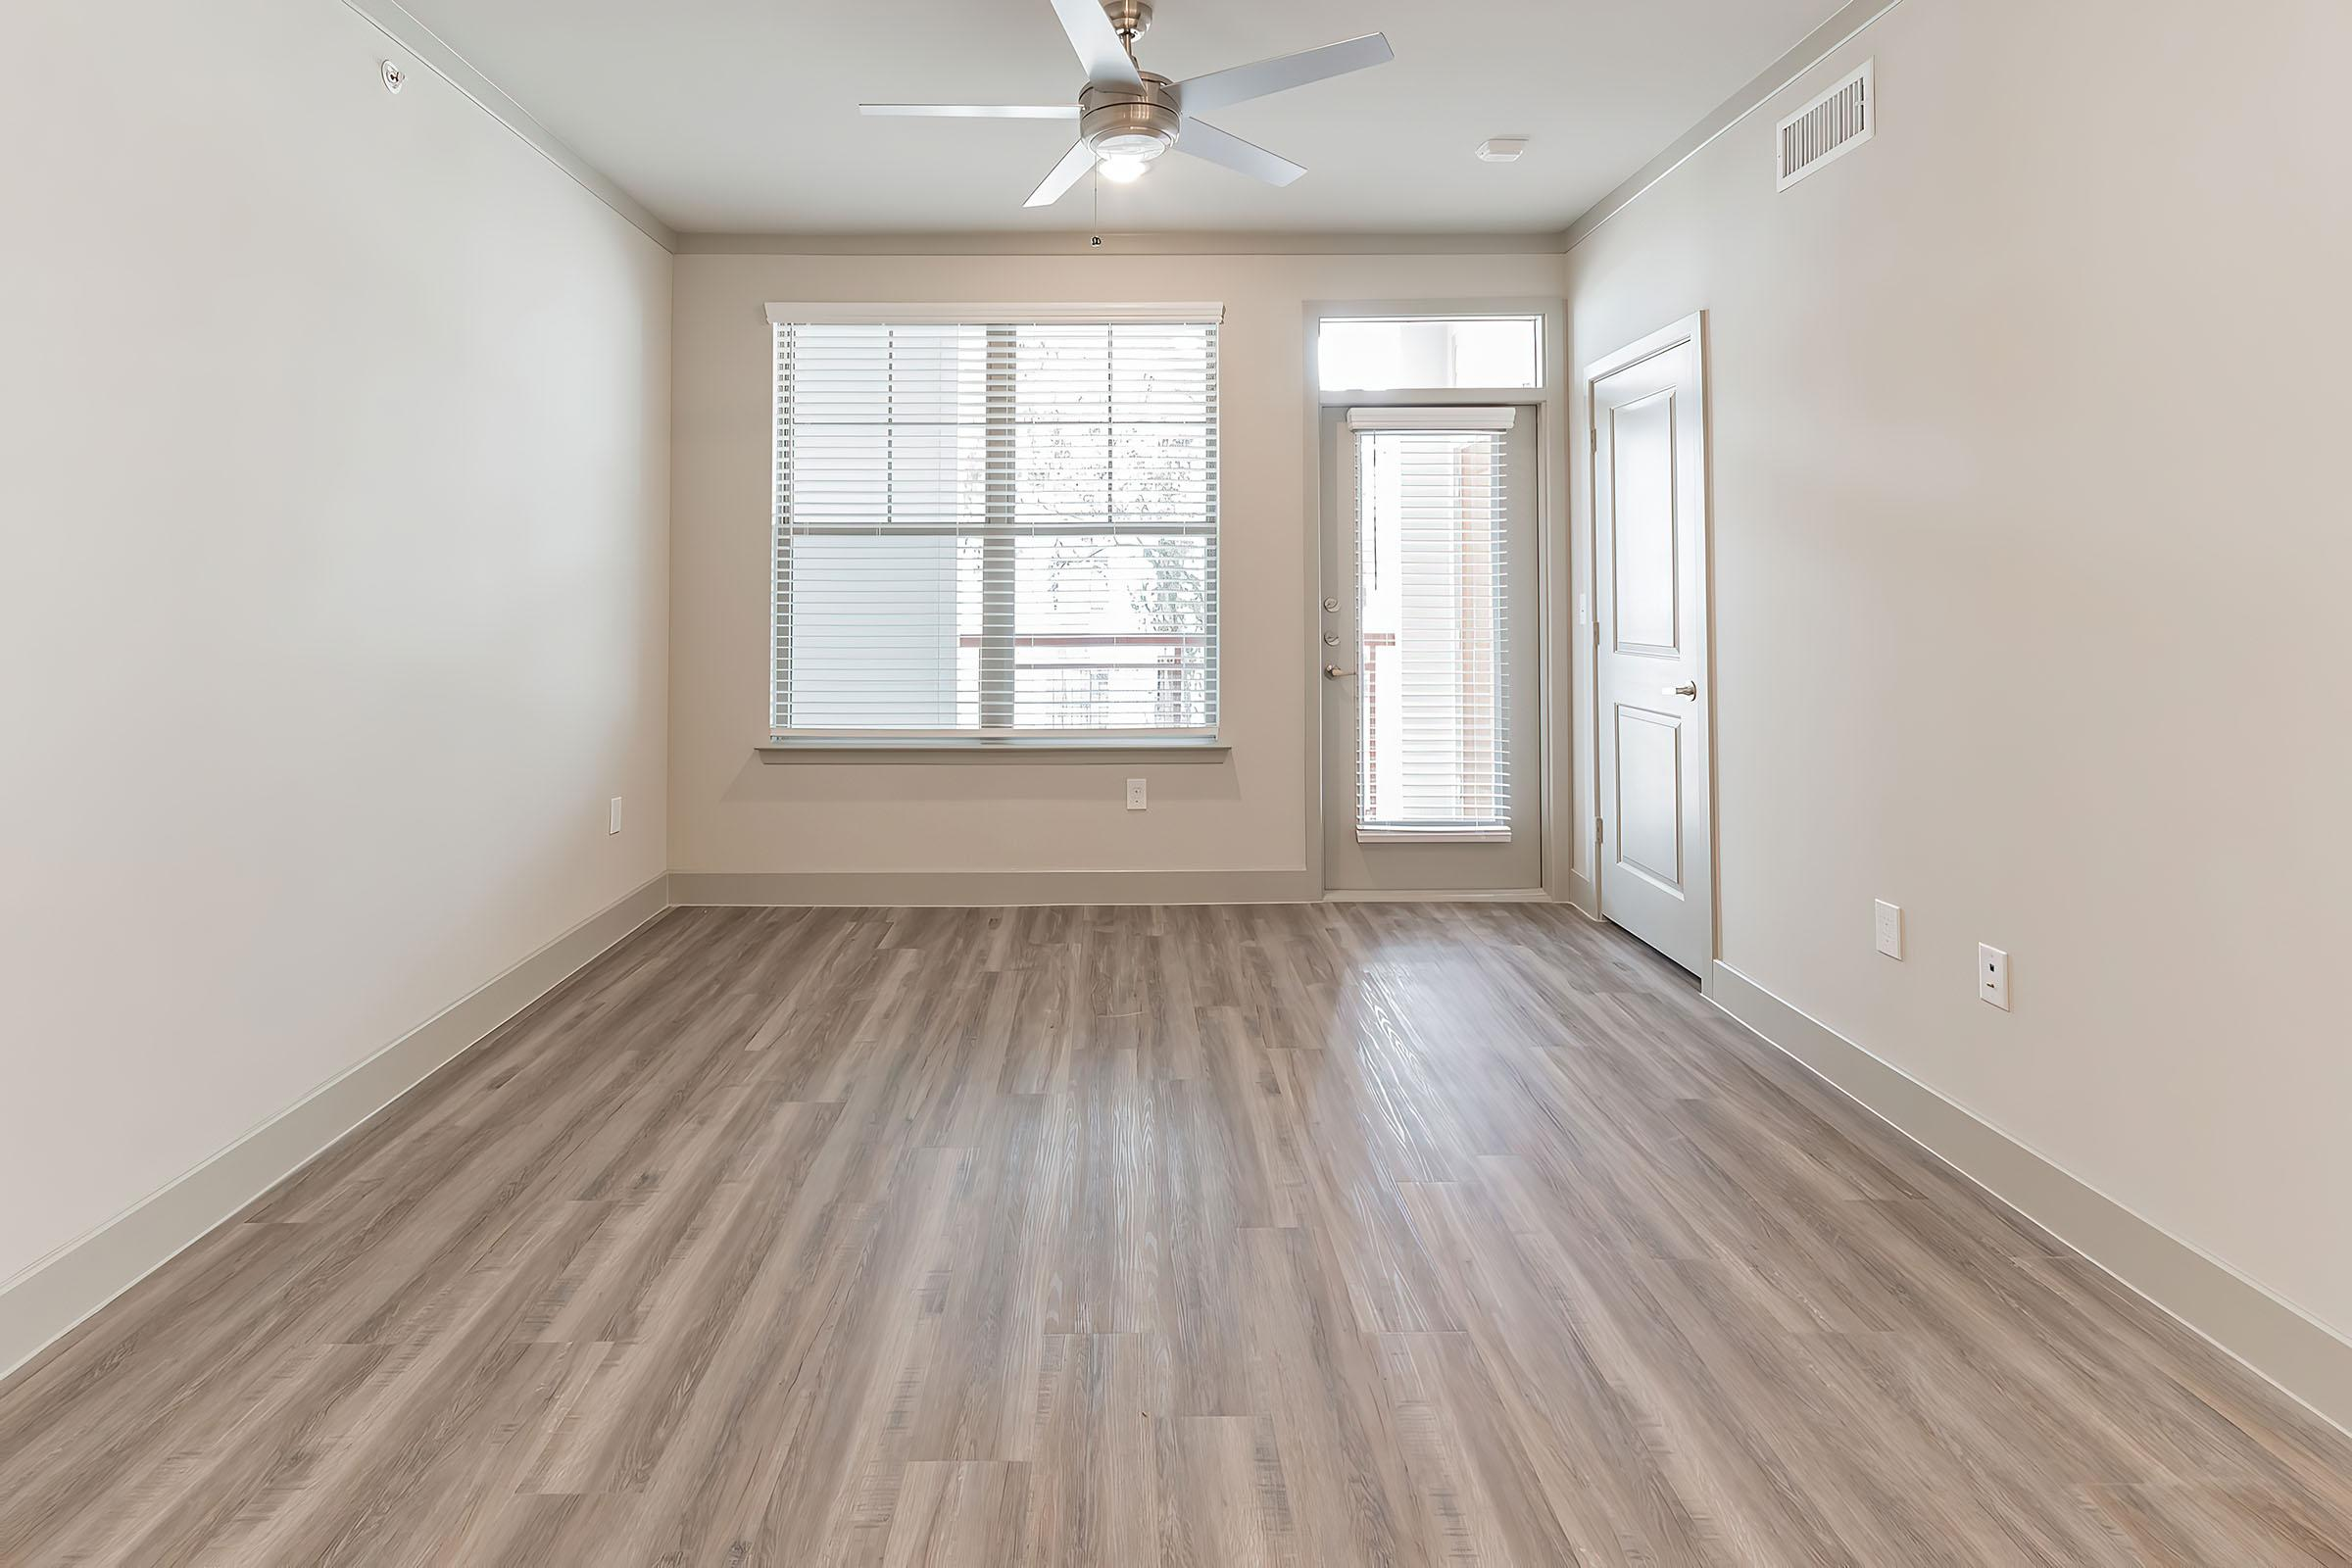 a wooden floor next to a window